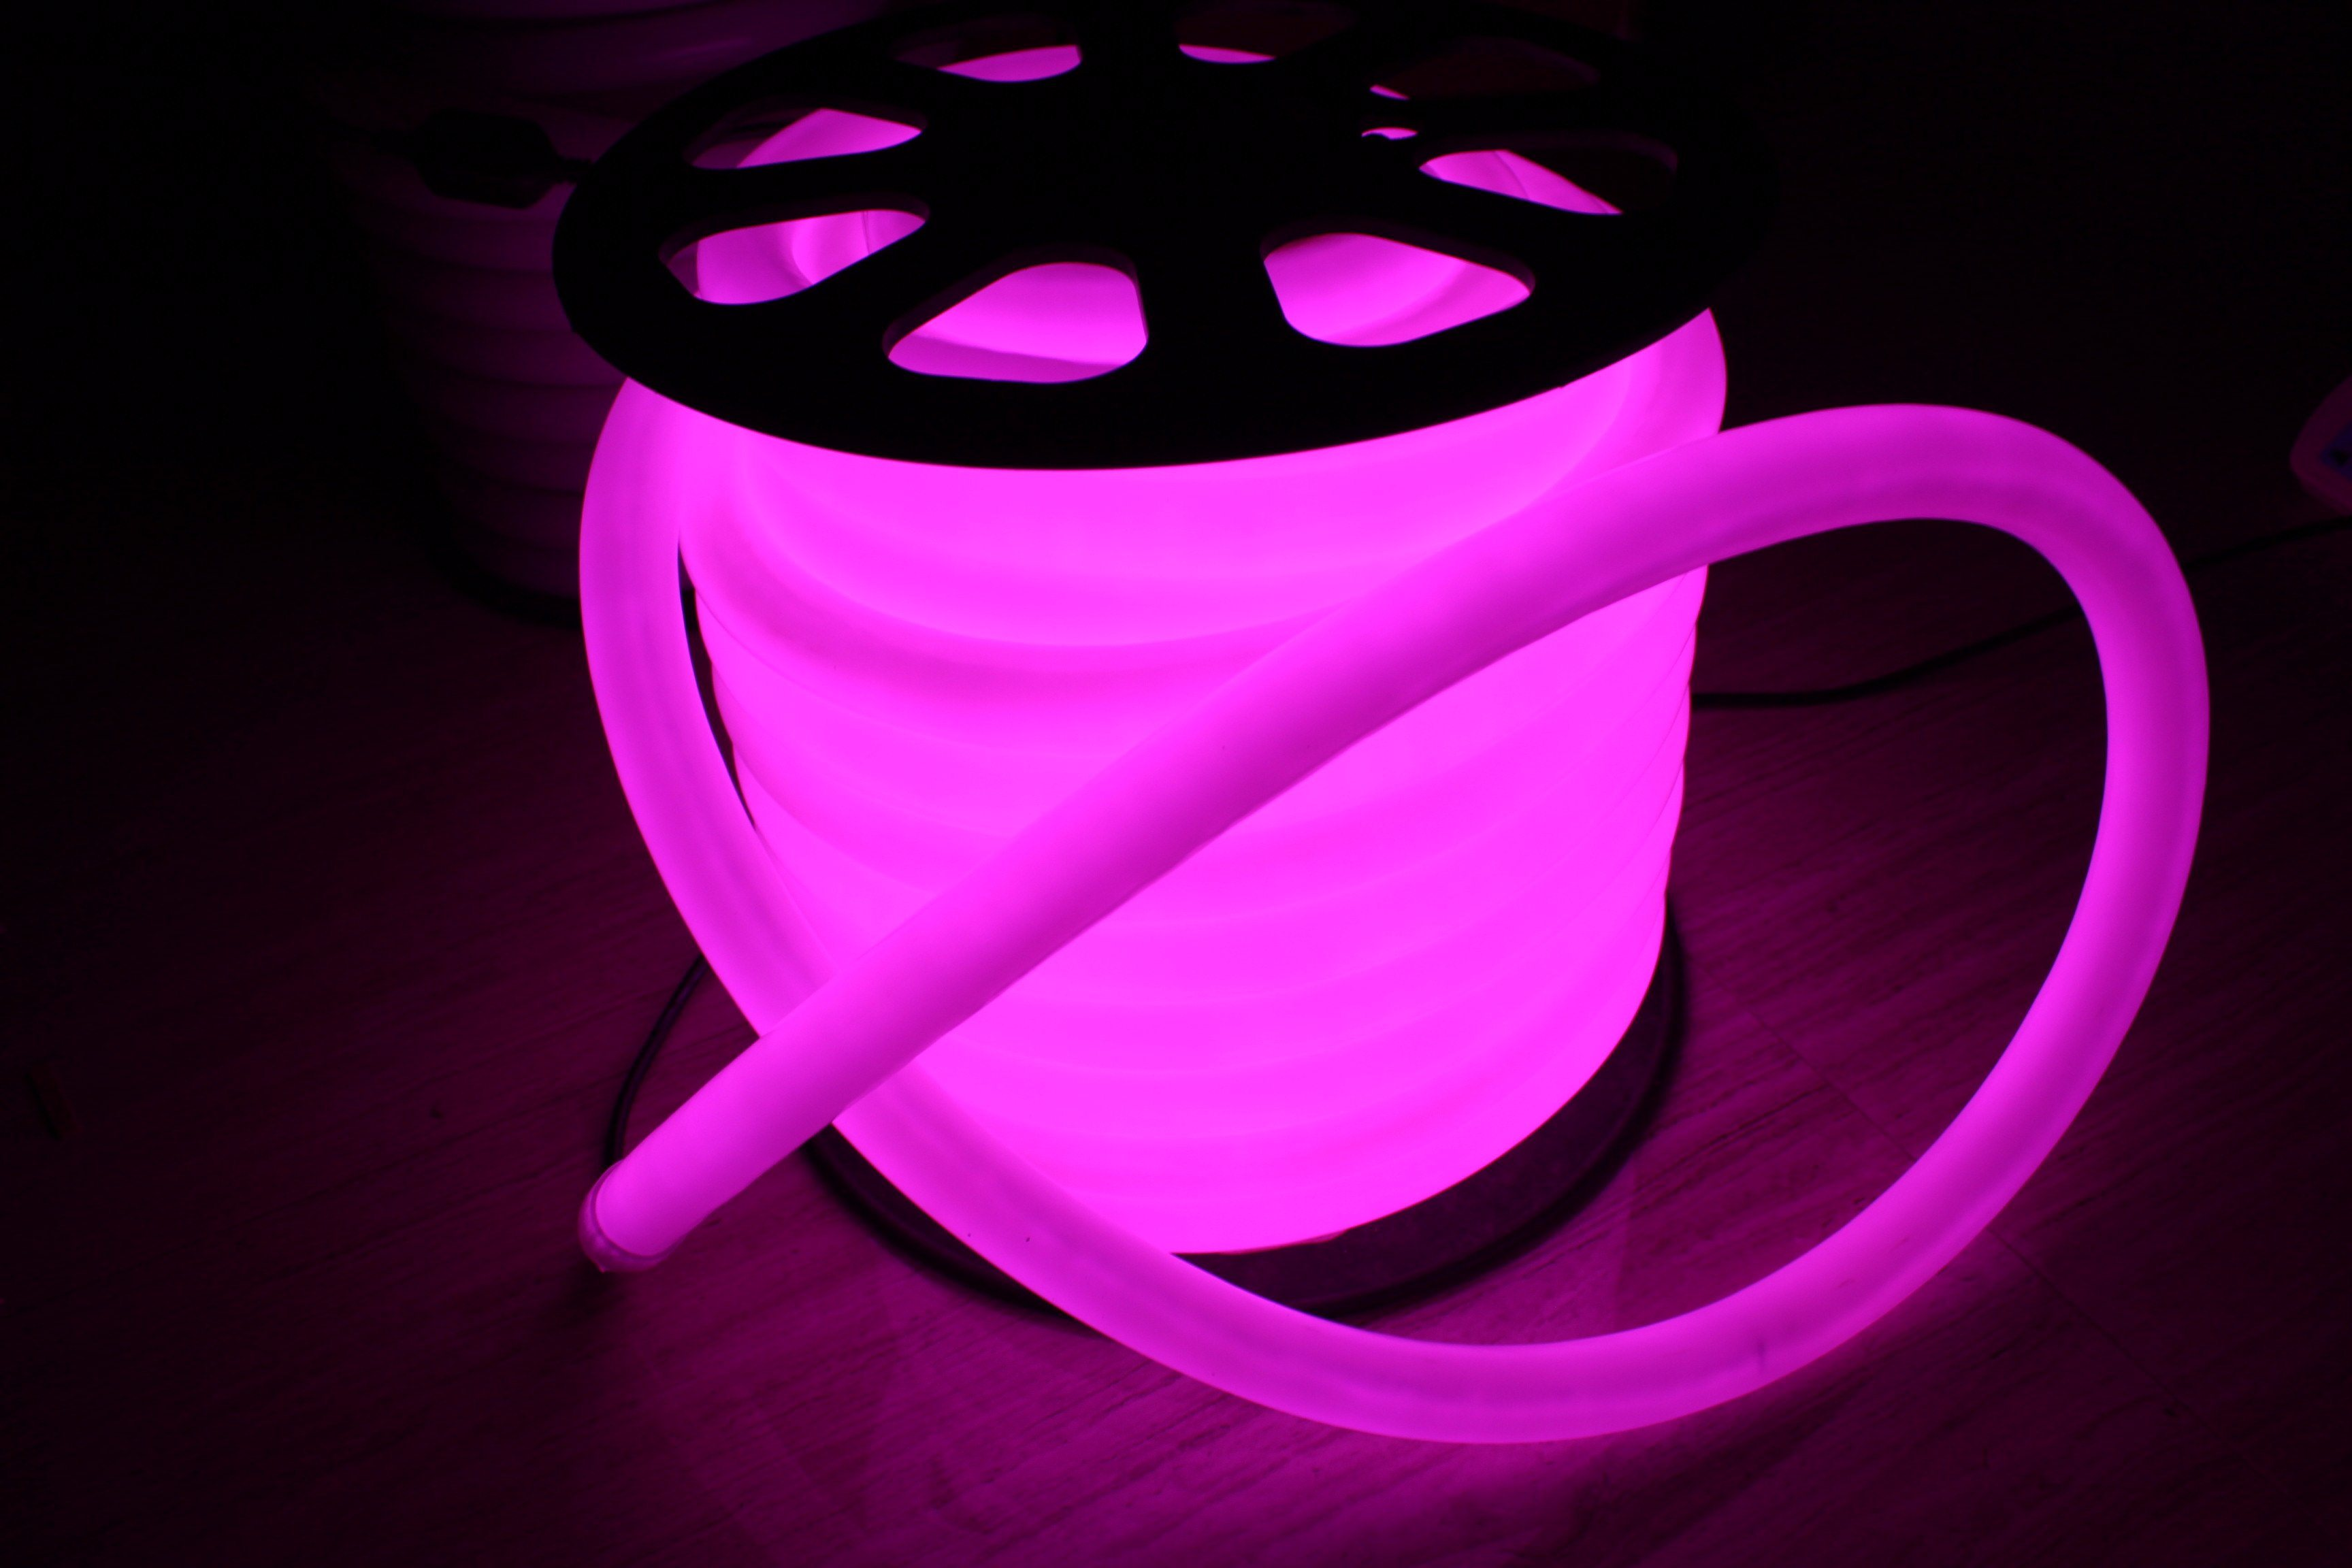 China waterproof 360 degree smd 2835 led rgb flexible neon sign 12v waterproof 360 degree smd 2835 led rgb flexible neon sign 12v neon rope light aloadofball Gallery